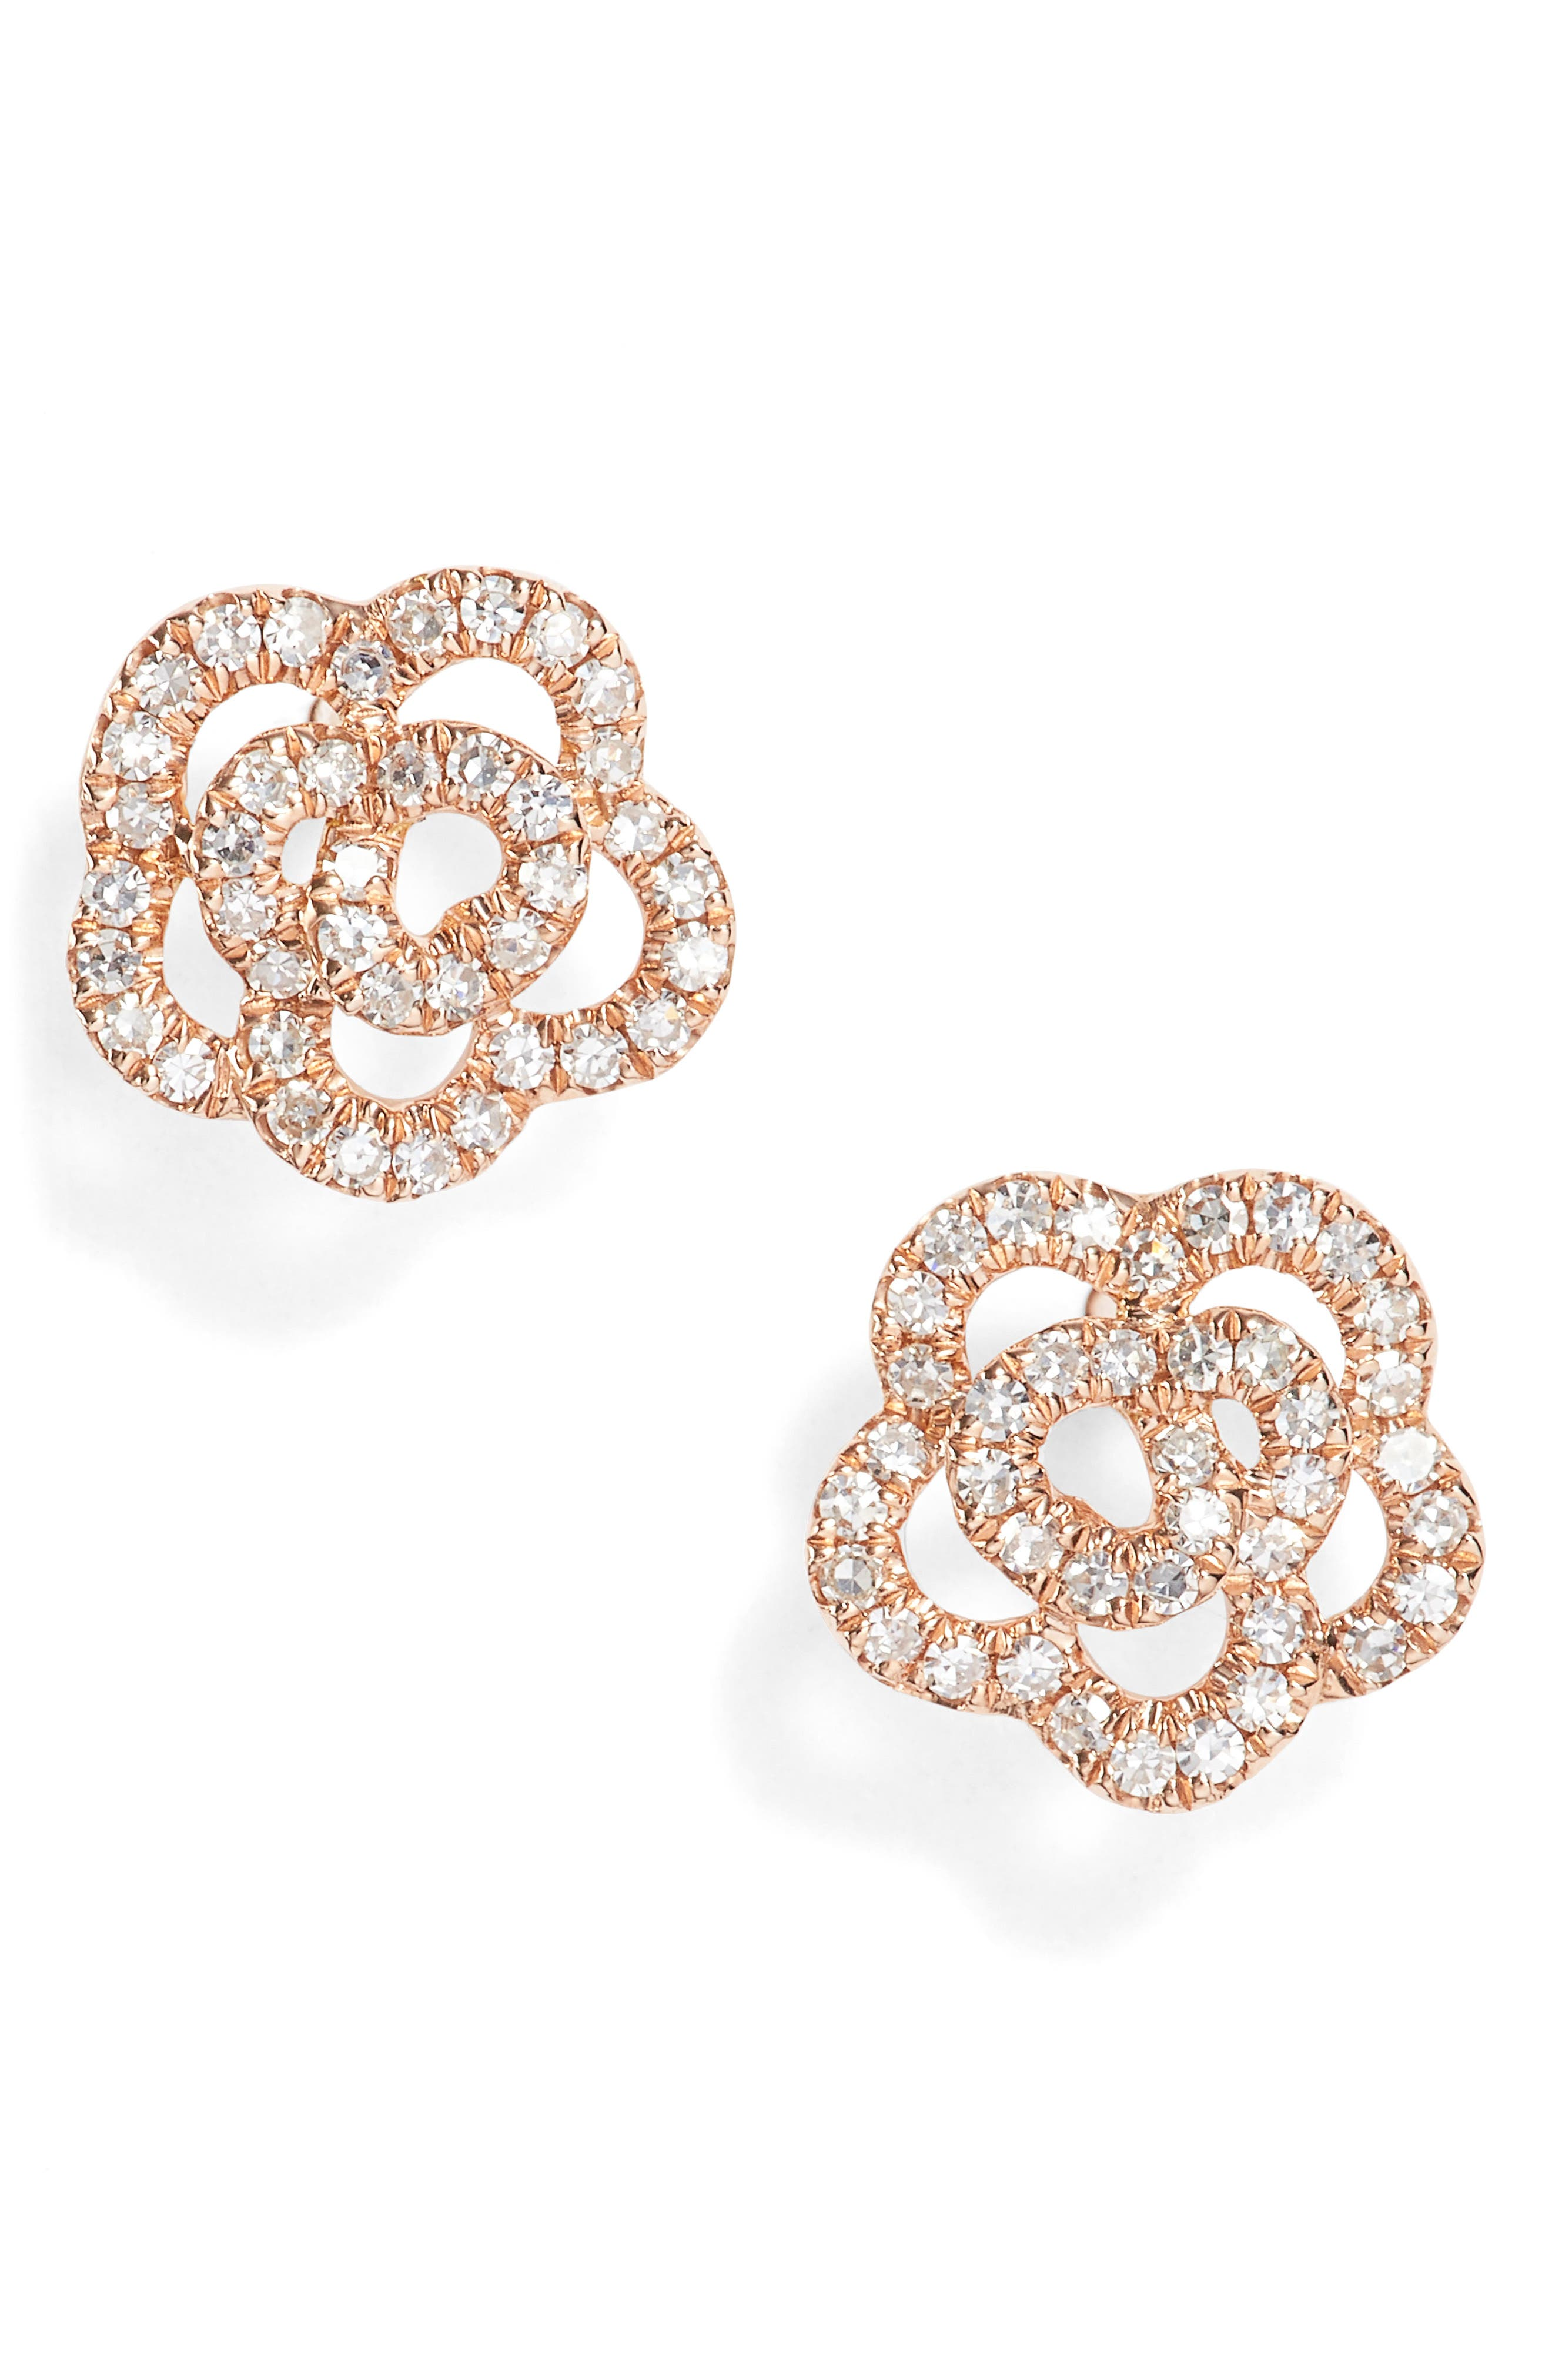 Rose Diamond Stud Earrings,                             Main thumbnail 1, color,                             Rose Gold